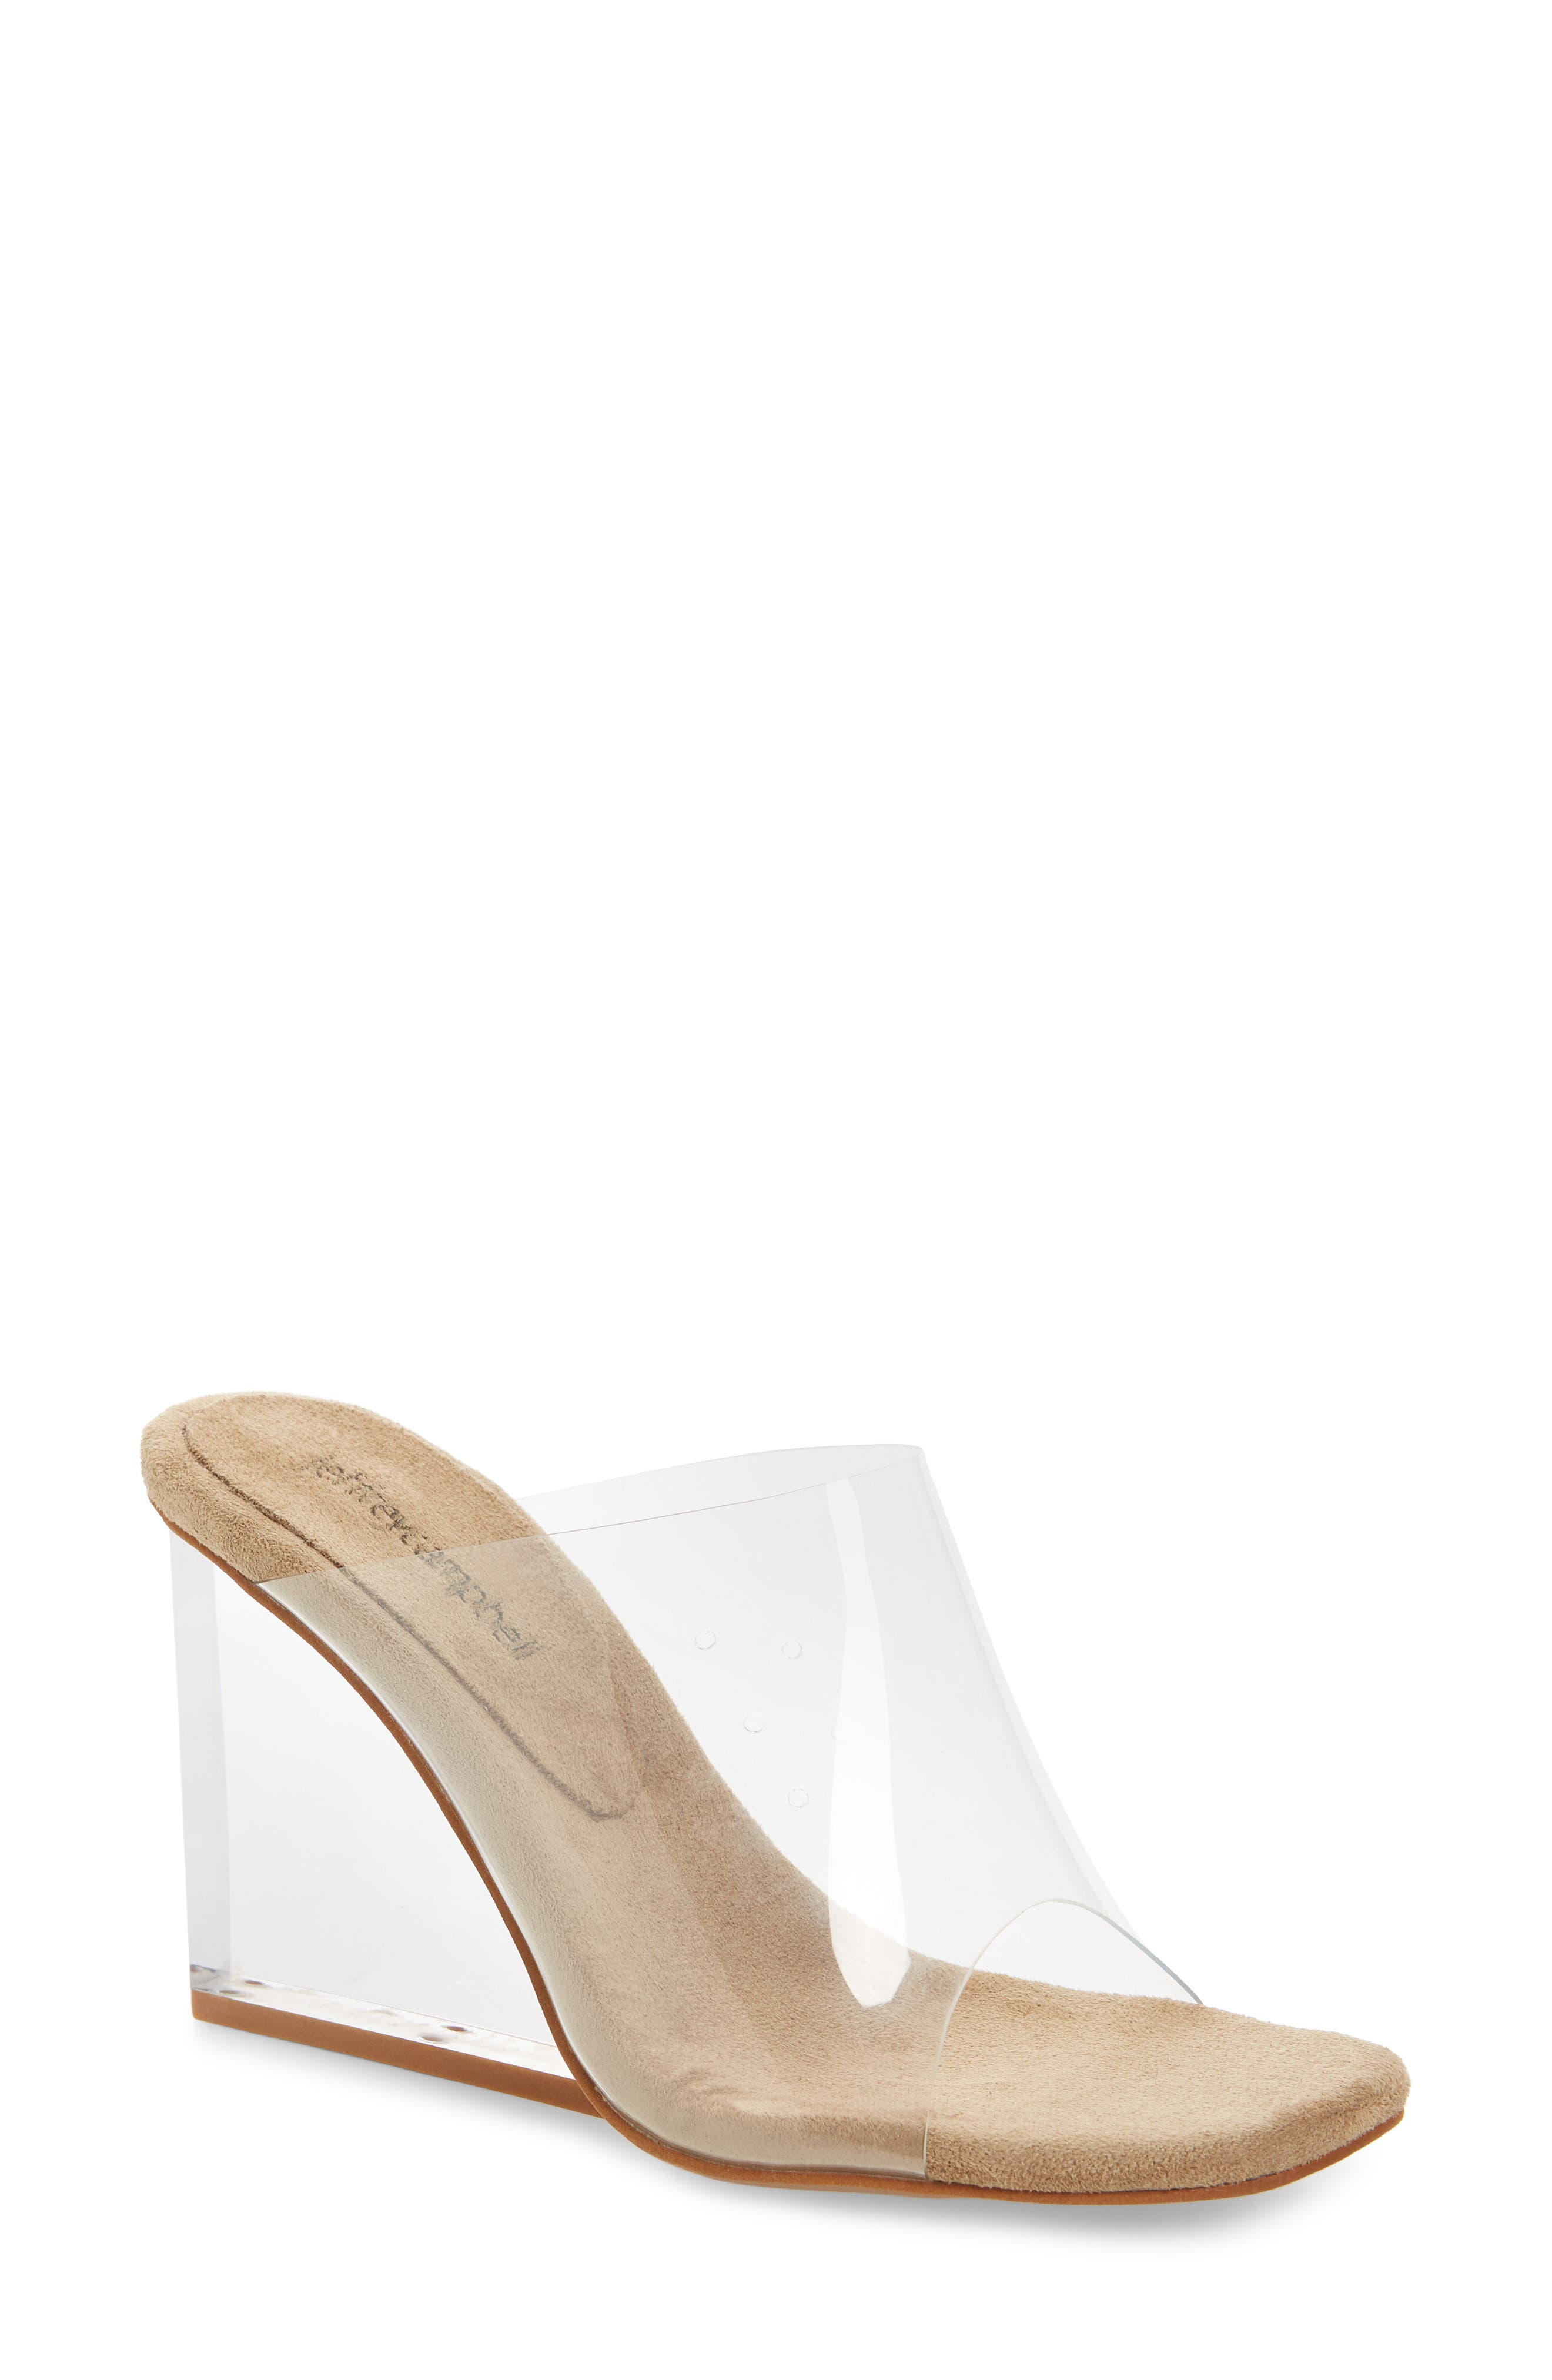 JEFFREY CAMPBELL, Clear Wedge Mule, Main thumbnail 1, color, CLEAR FAUX LEATHER